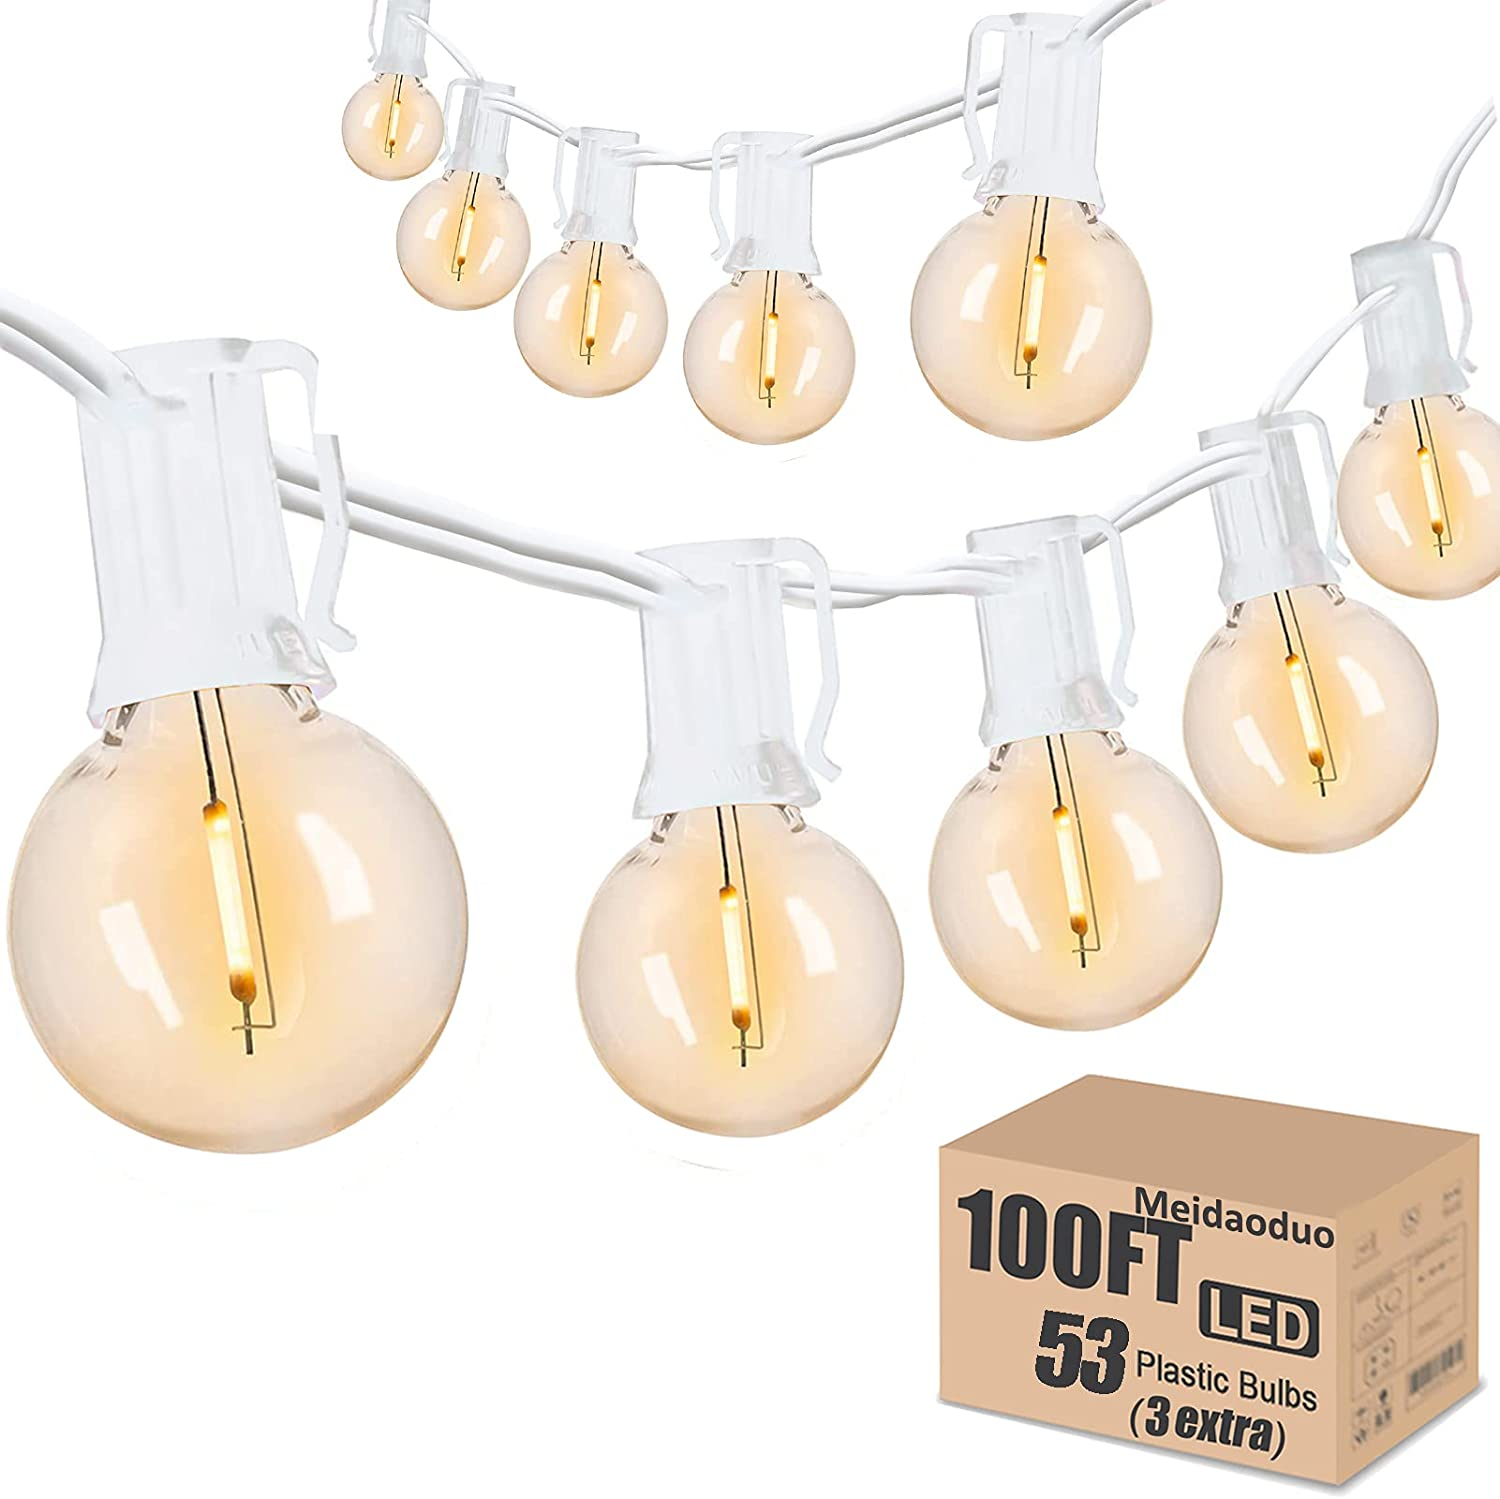 Outdoor String Lights Patio LED 100FT G40 Globe String Lights with 53 Shatterproof Clear Bulbs(3 Extra) for Indoor/Outdoor Wedding Pergola Gazebo Decor, White String Lights